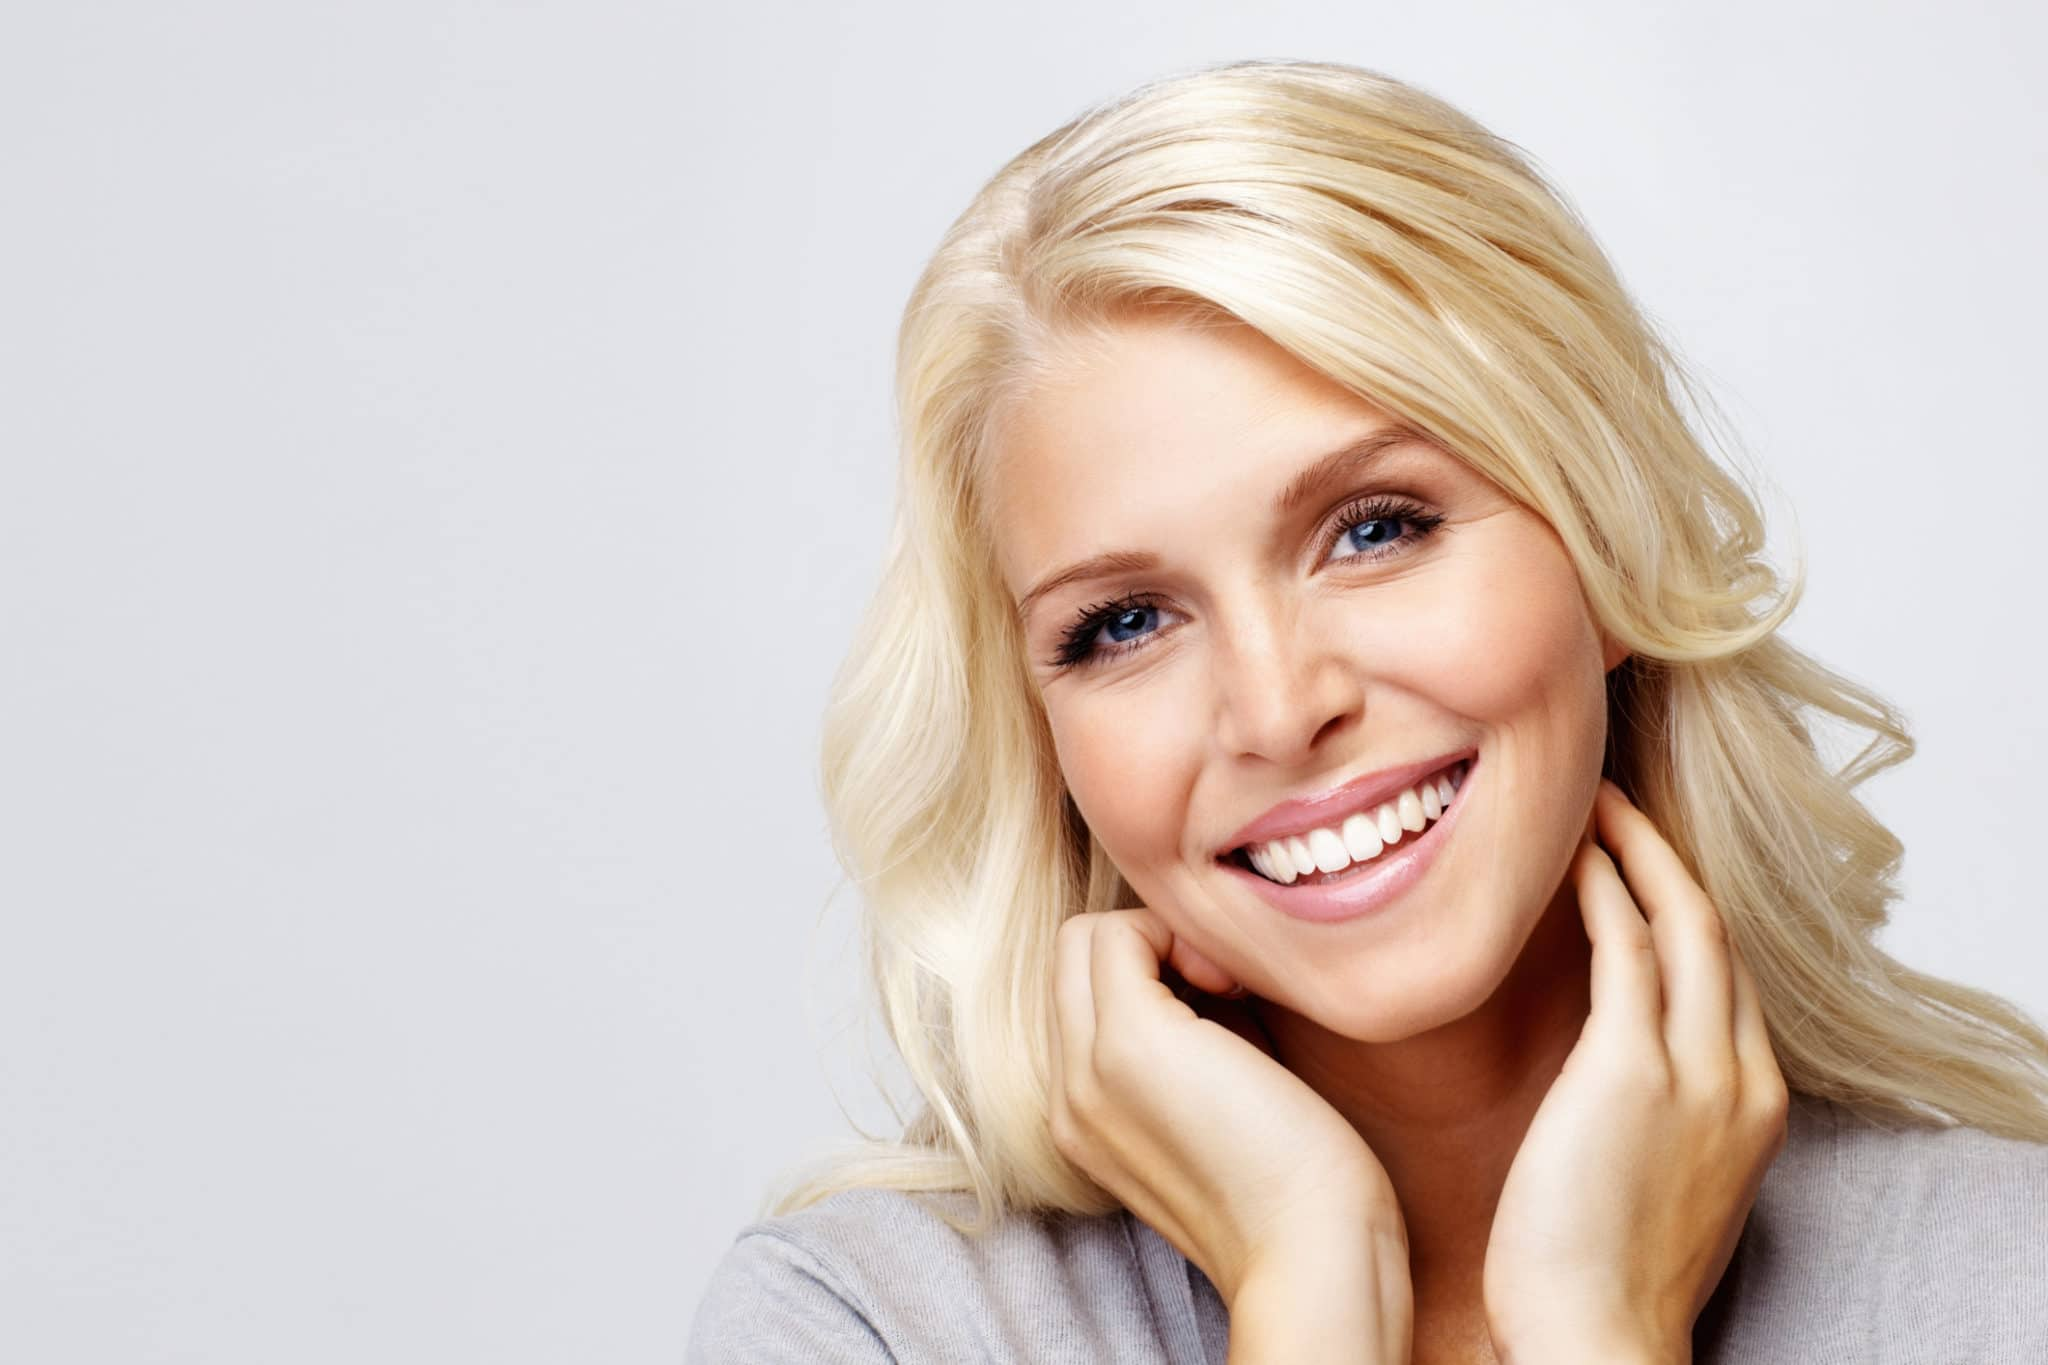 Close-up of a young, smiling blond woman stock photo